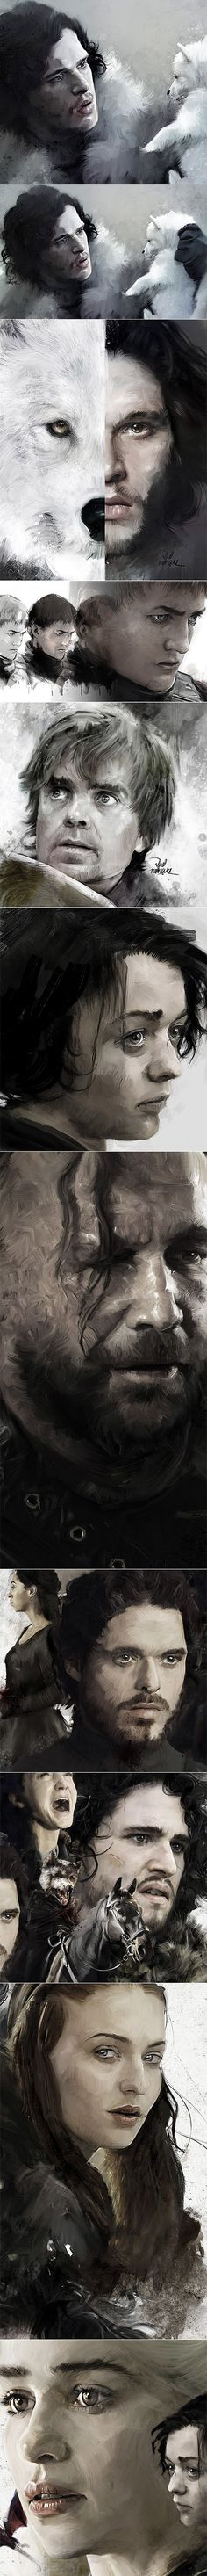 Artwork 'Game Of Thrones' on Behance Vlad Rodriguez